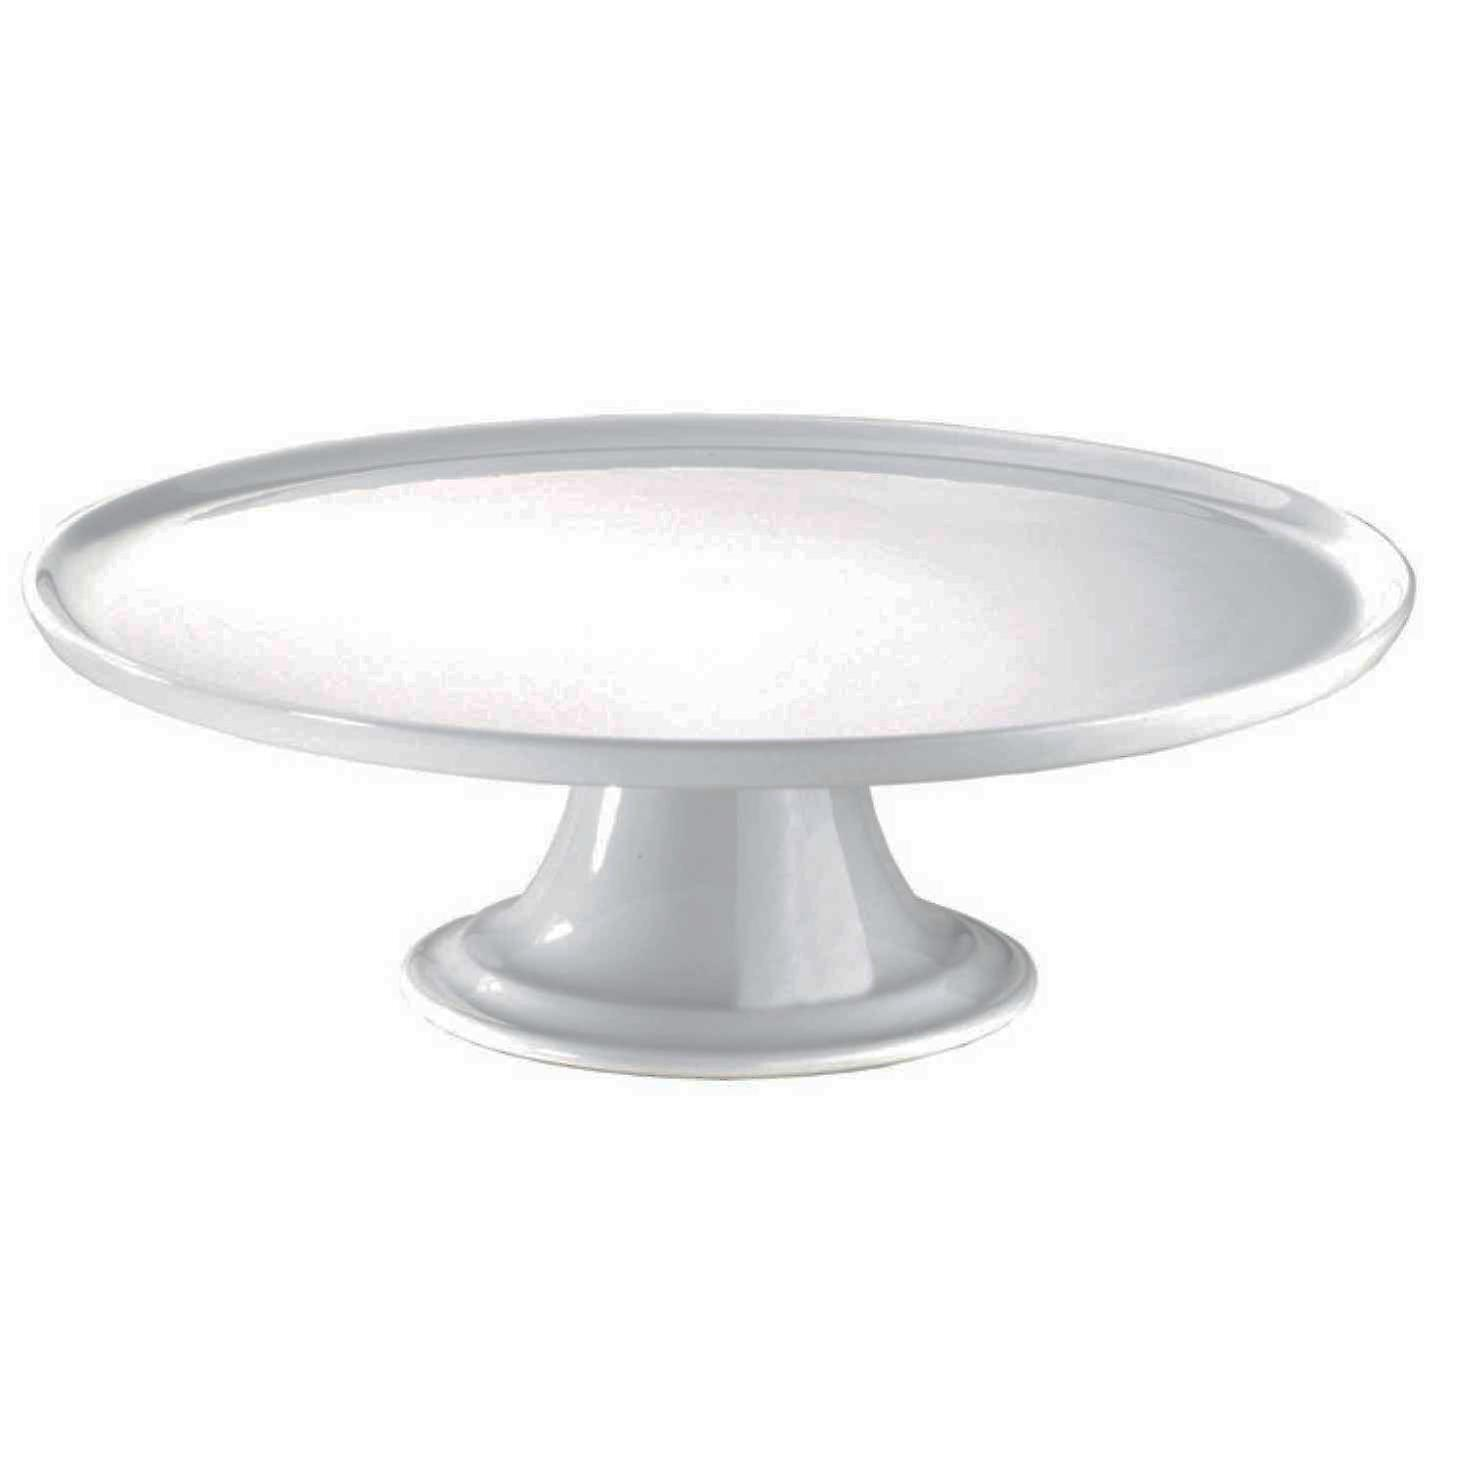 Pillivuyt - tall cake stand with foot 36 cm